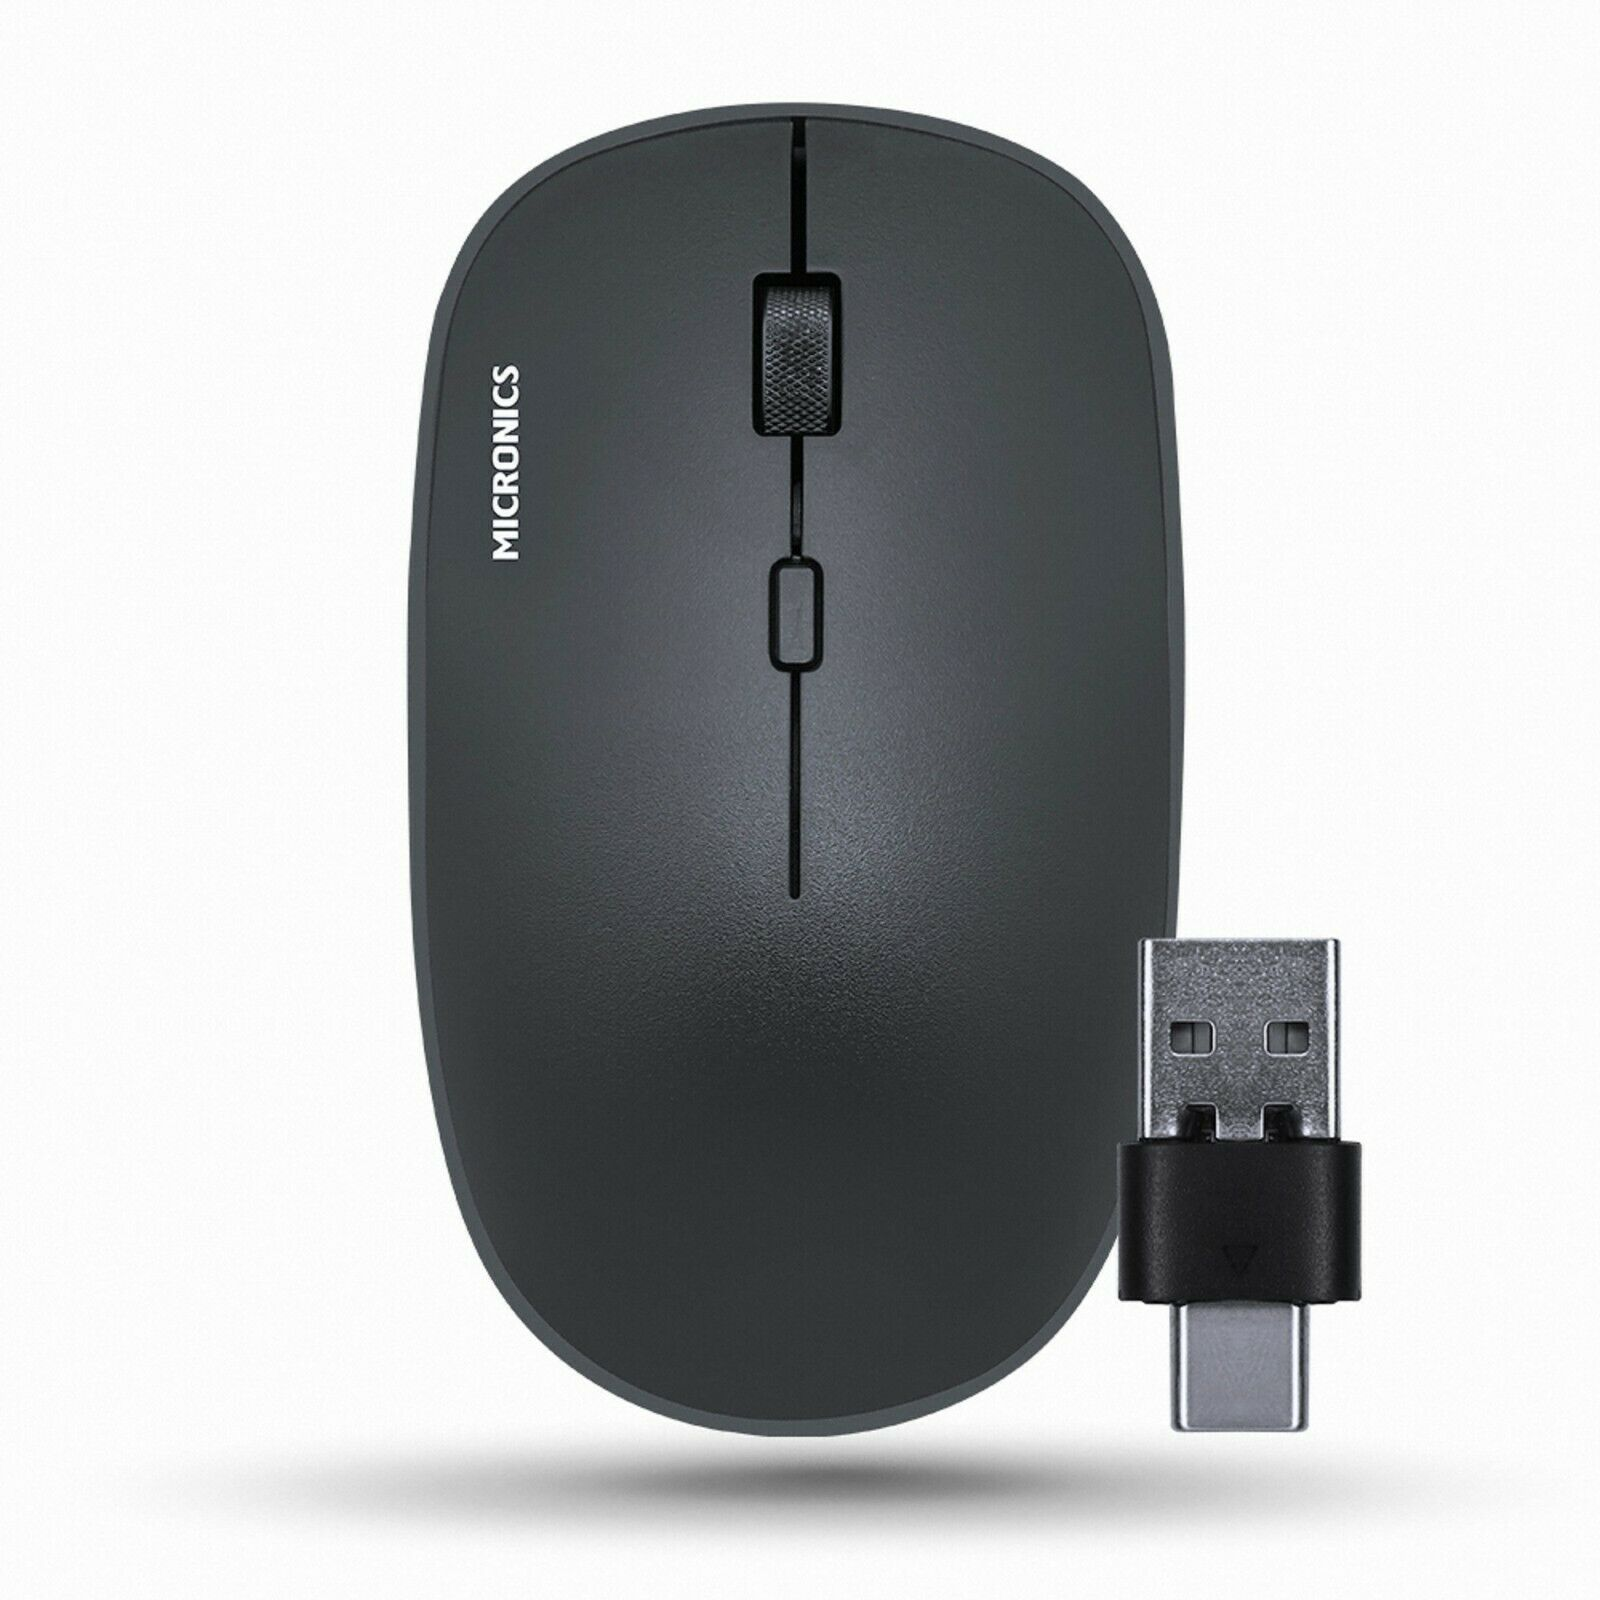 Micronics E5S Wireless Silent Mouse USB C Type Multi Receiver Low Noise Mouse